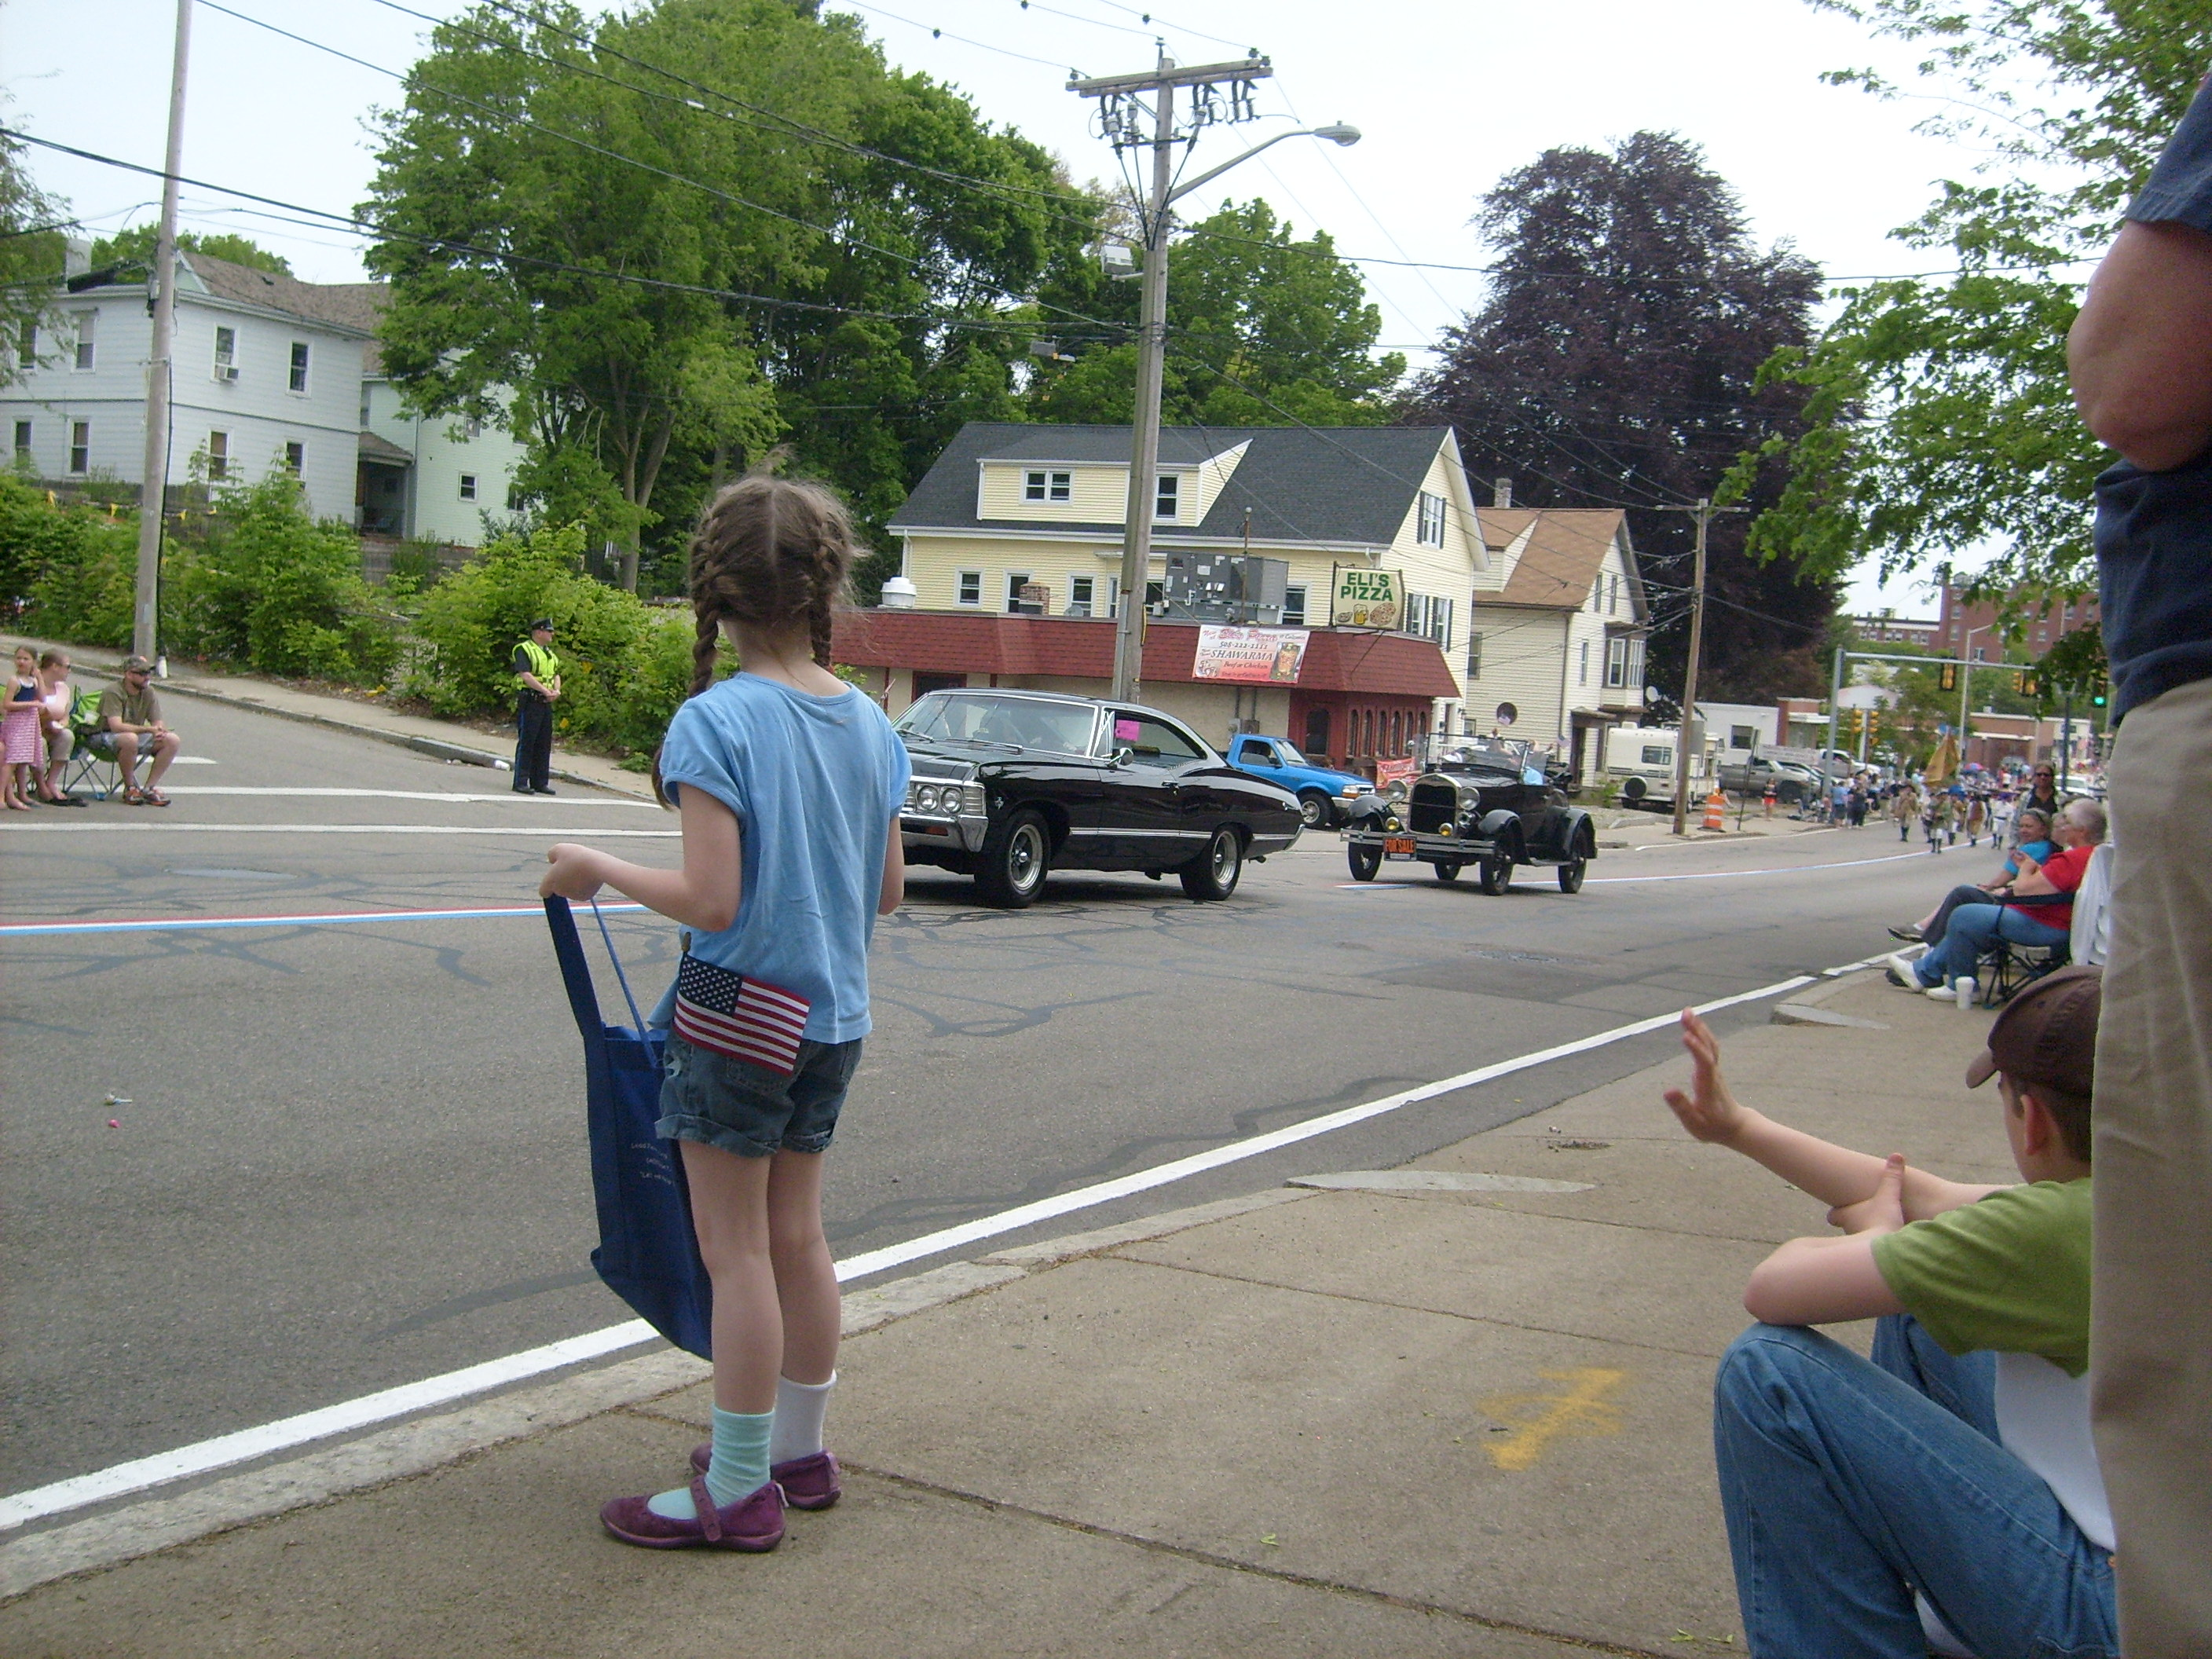 K holding her candy bag open at the Memorial Day Parade, because some of the guests in the fancy cars like to aim candy at open bags, and if they miss, they throw again.